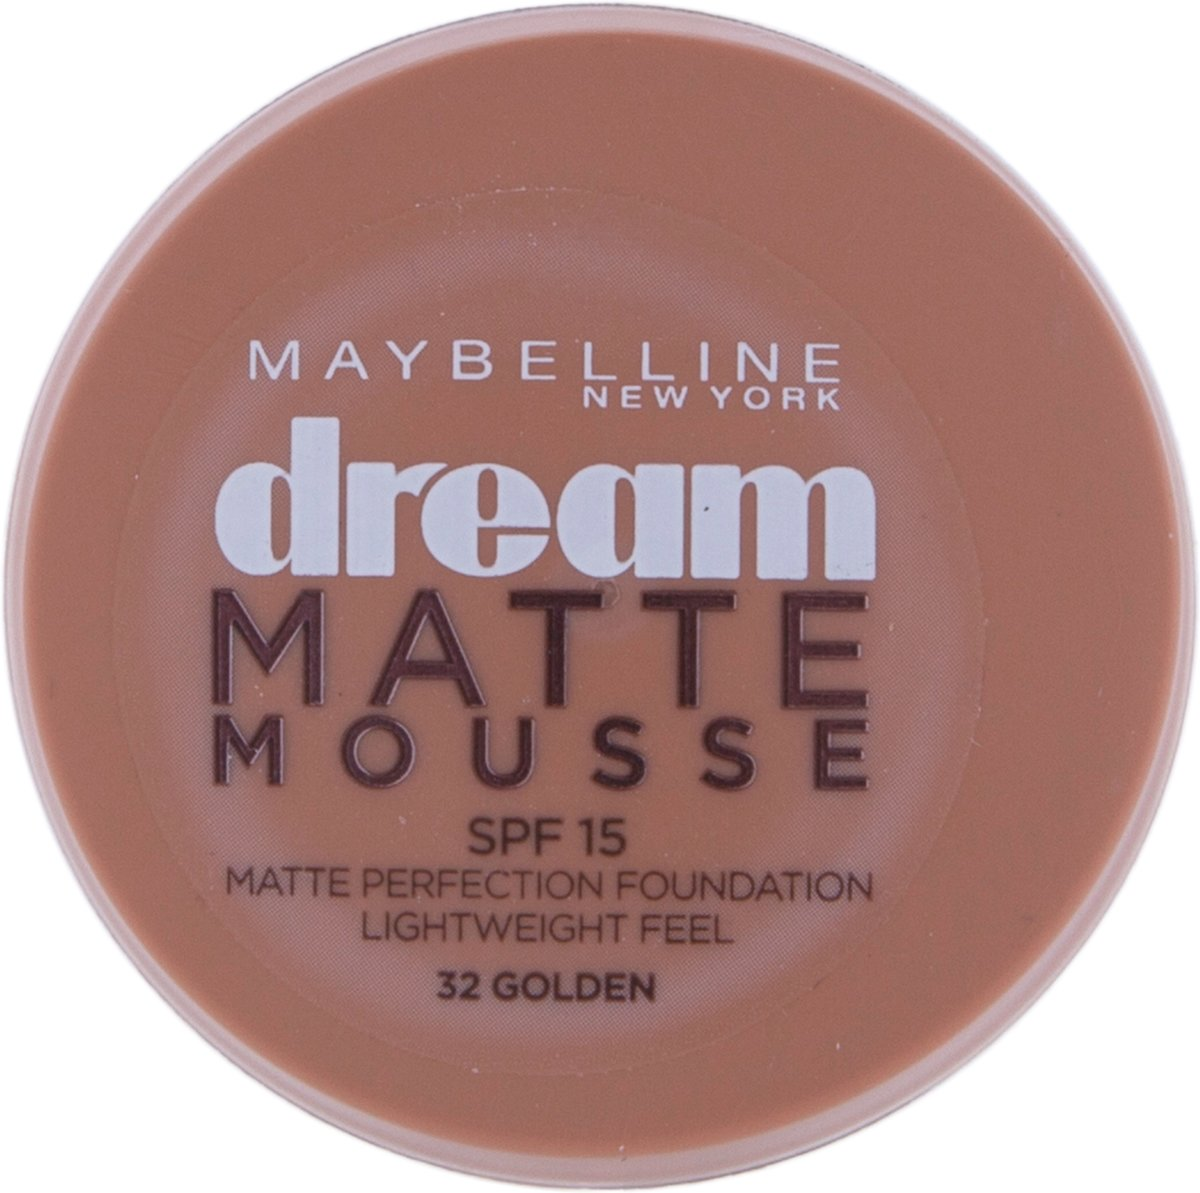 MAY FDT DREAM MAT NUgb 032 Golden